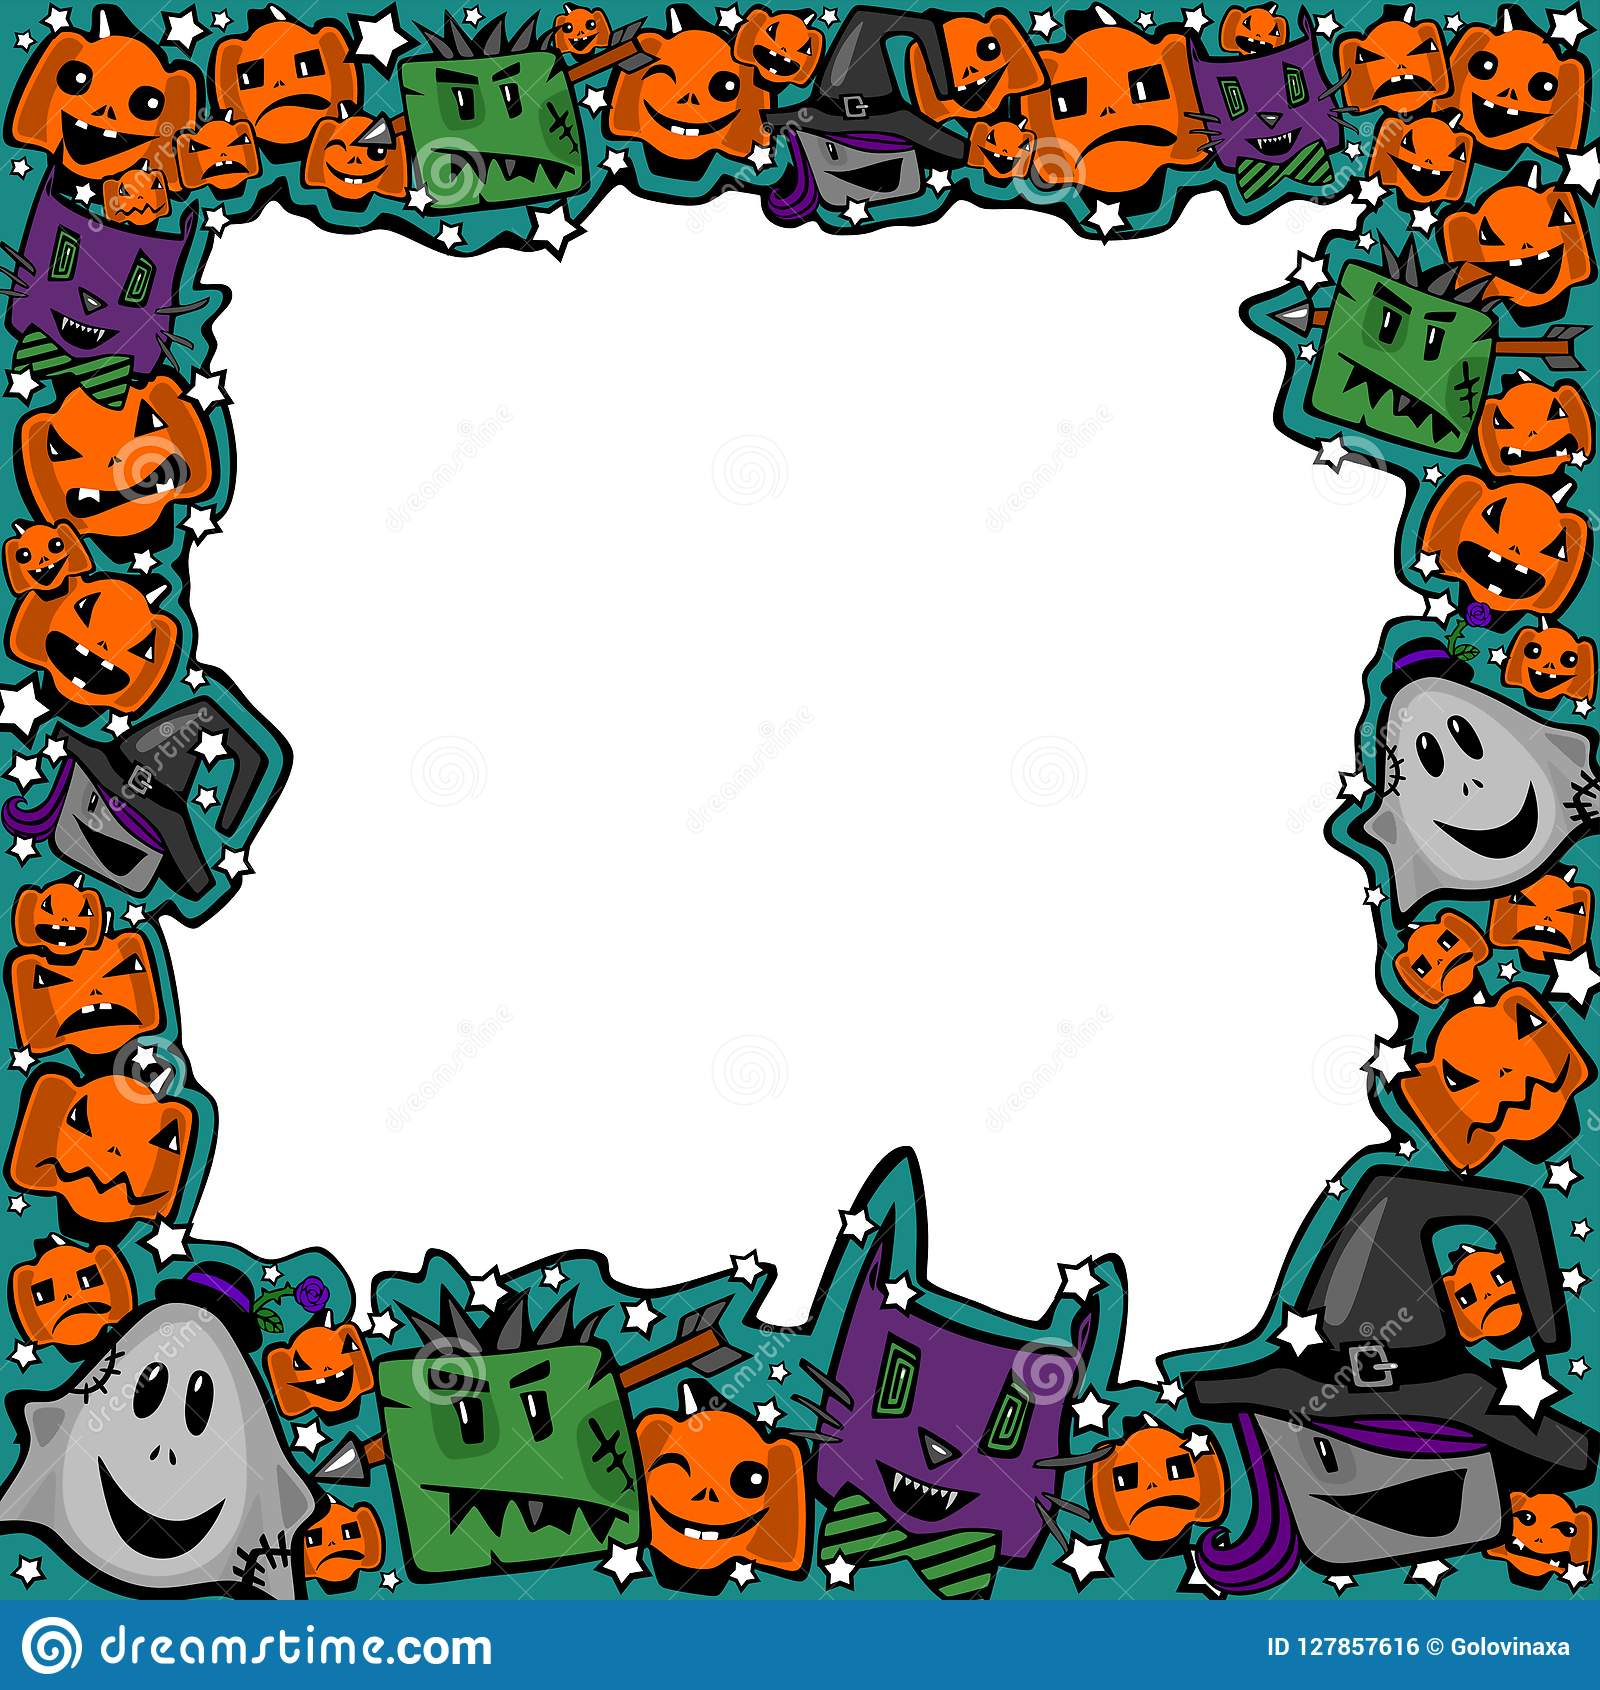 Halloween Frame With Witches, Zombies, Ghosts, Cats And